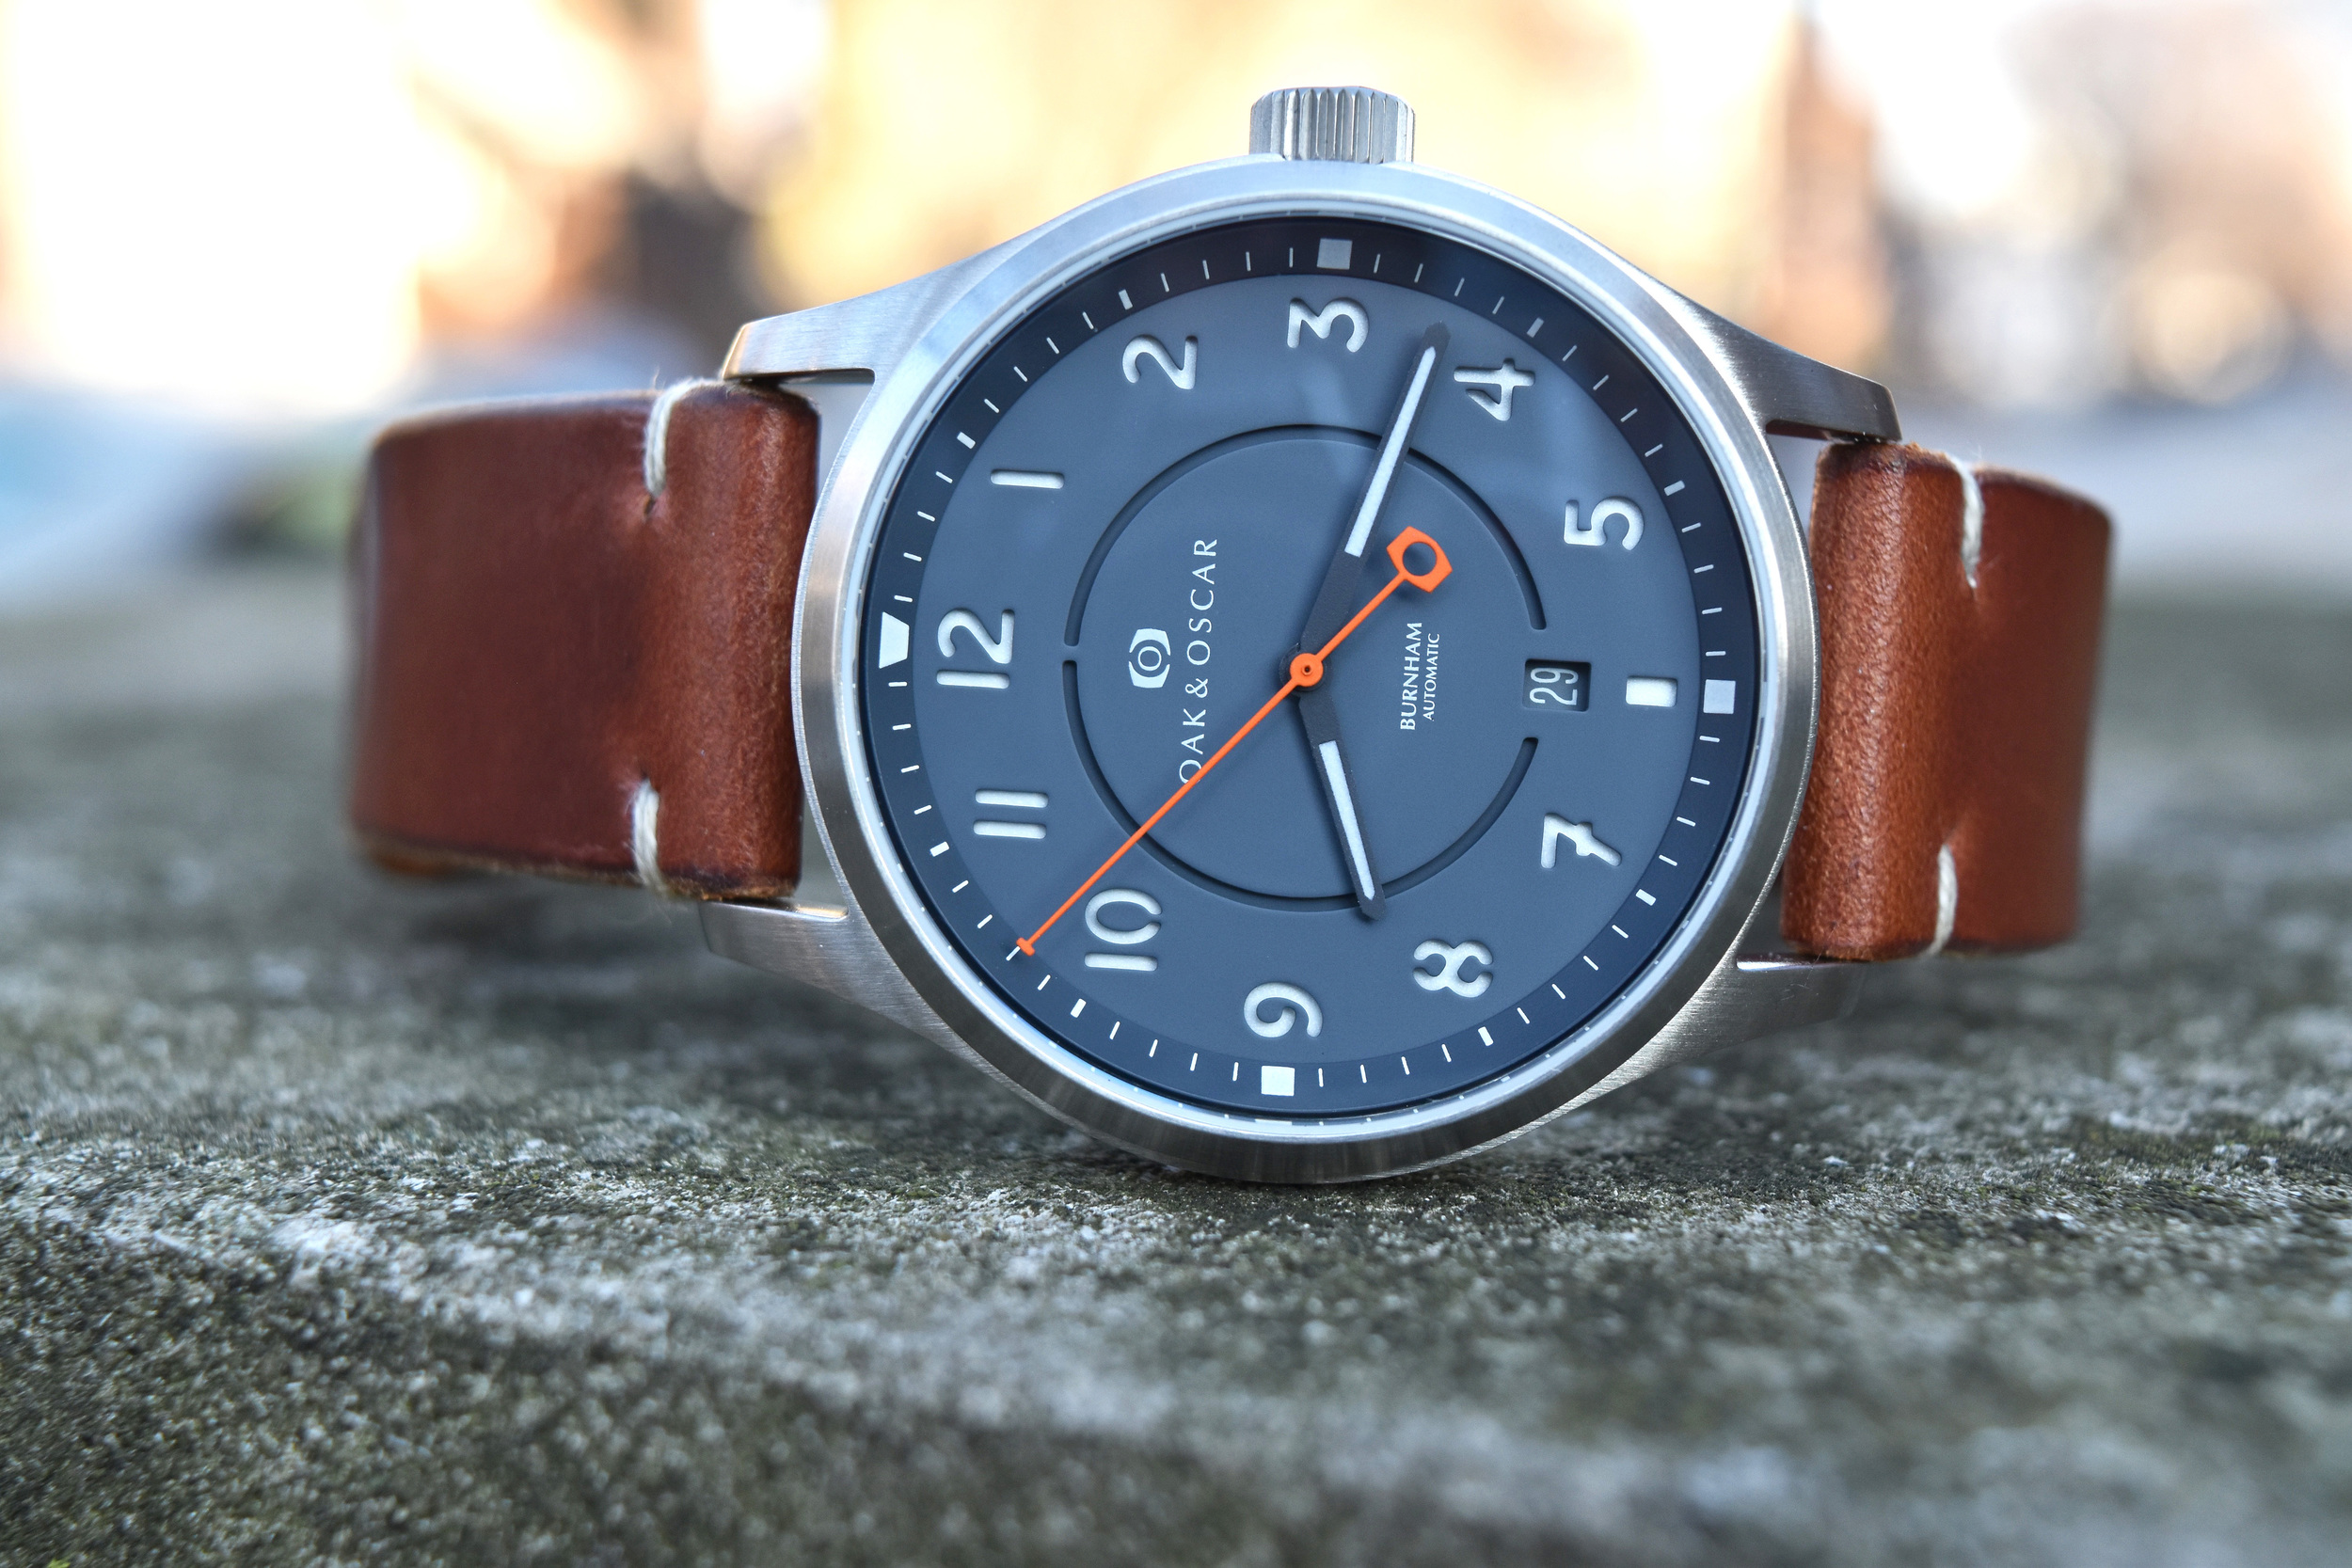 The Horween leather strap that comes with the Burnham is incredibly soft and the perfect strap for the watch.